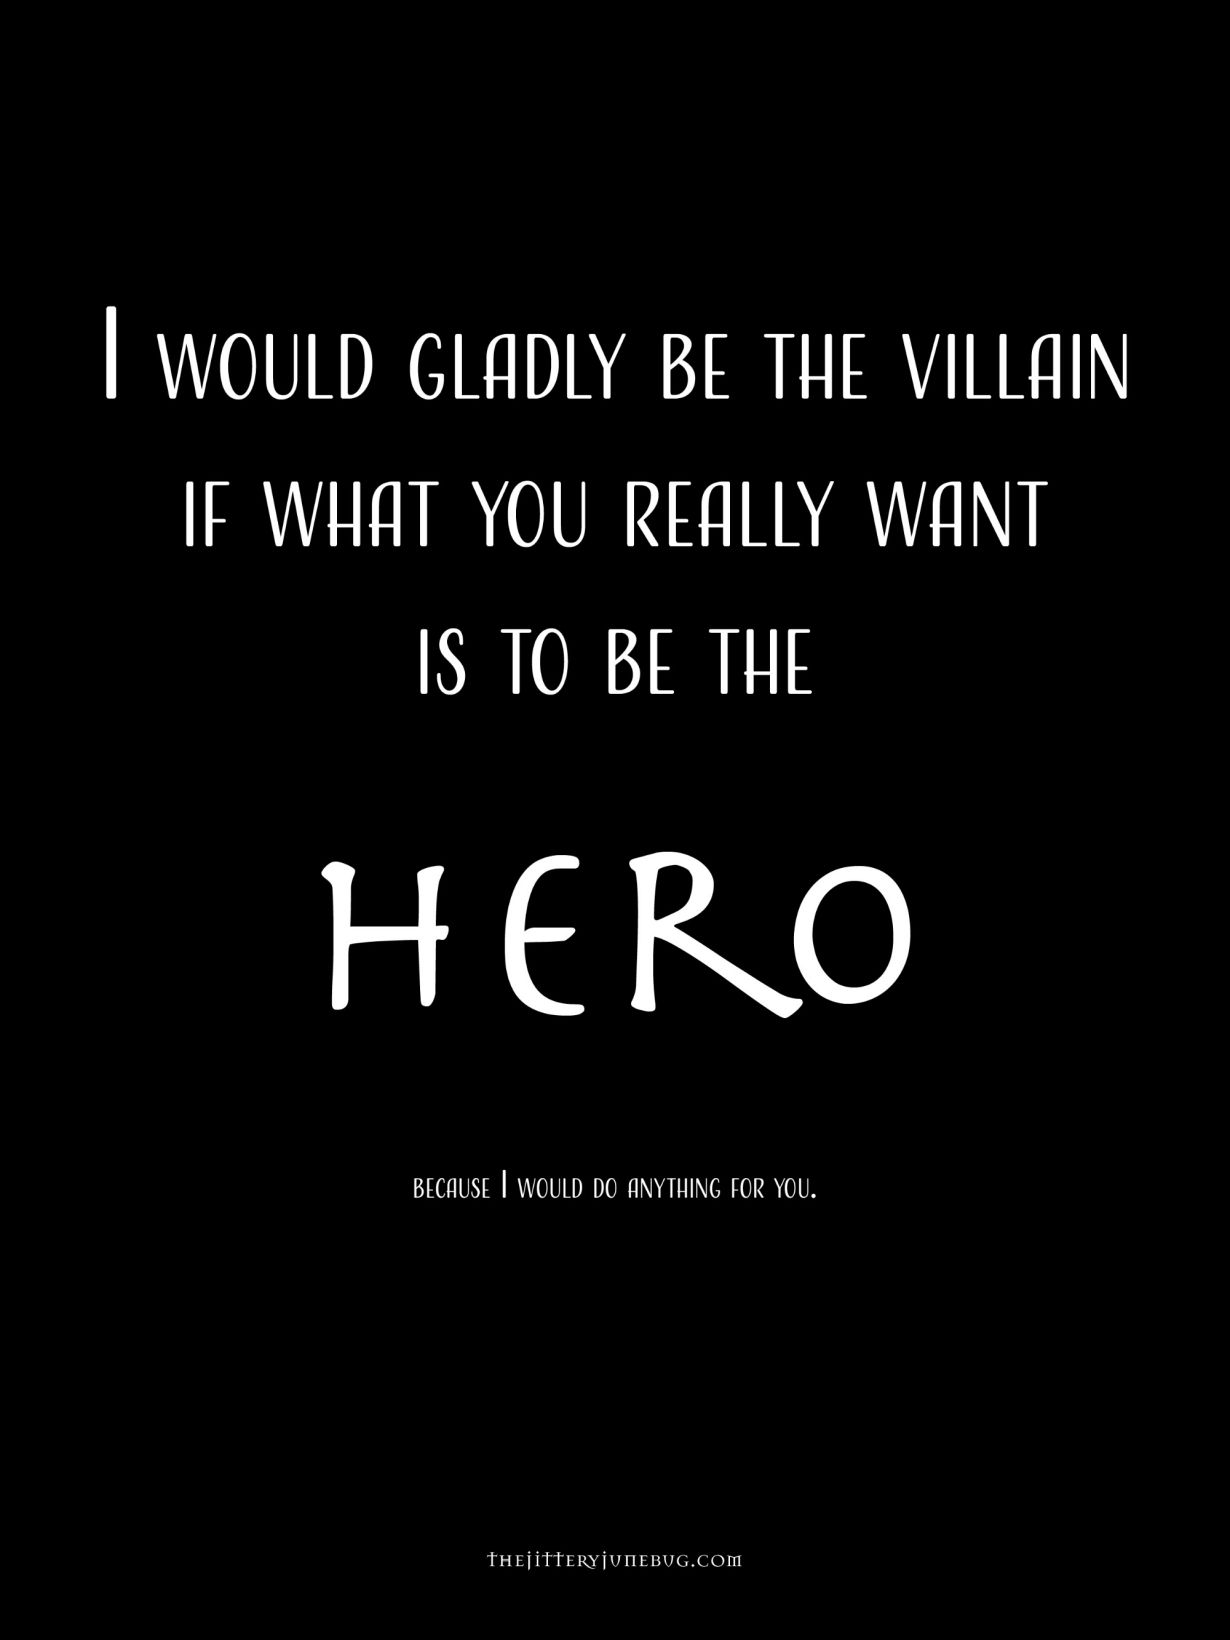 Fantasy Writing prompt. I would gladly be the villain if ...